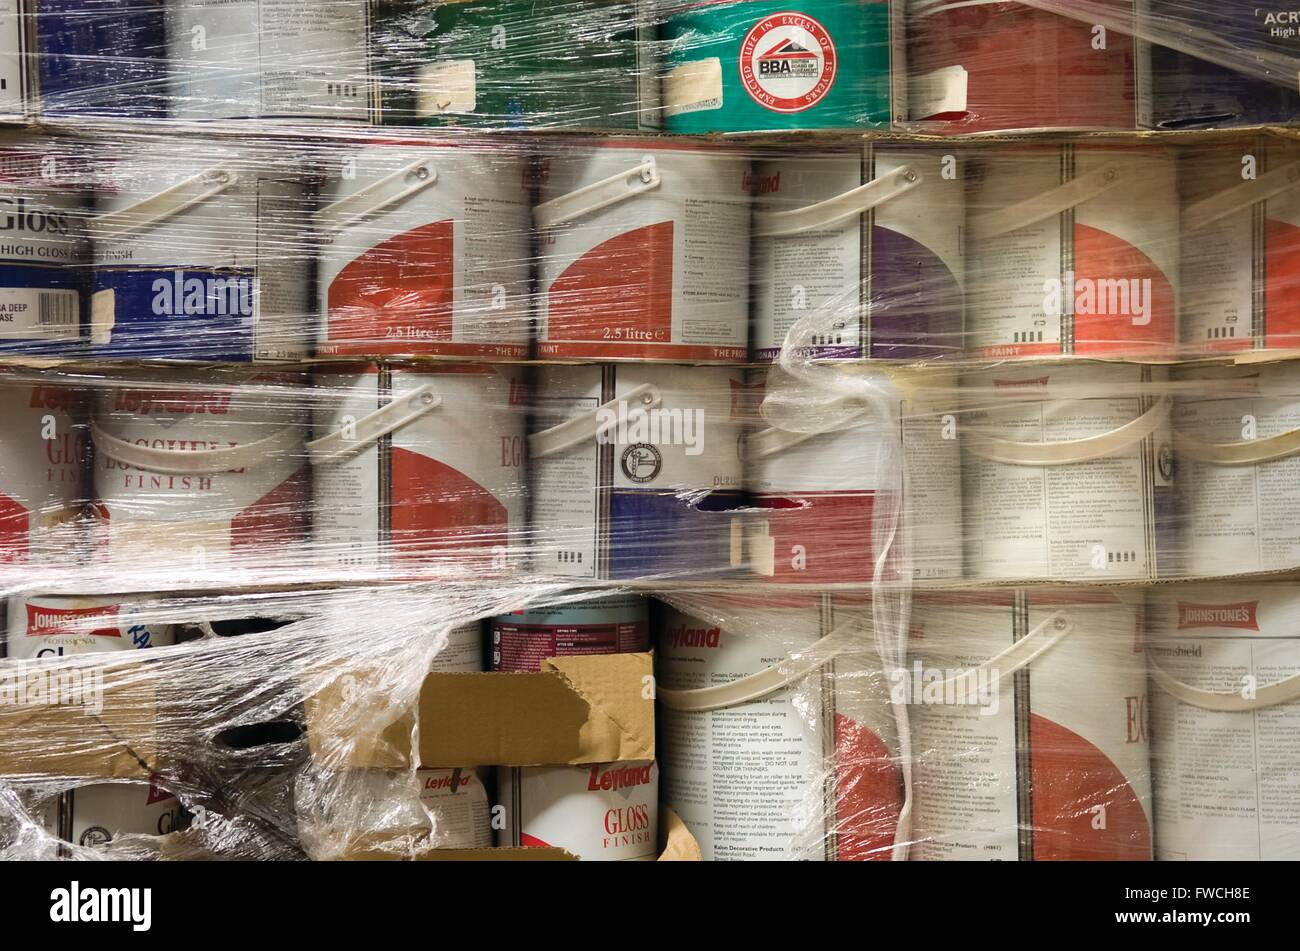 Peinture Leyland Pile Of Tins Stock Photos Pile Of Tins Stock Images Alamy